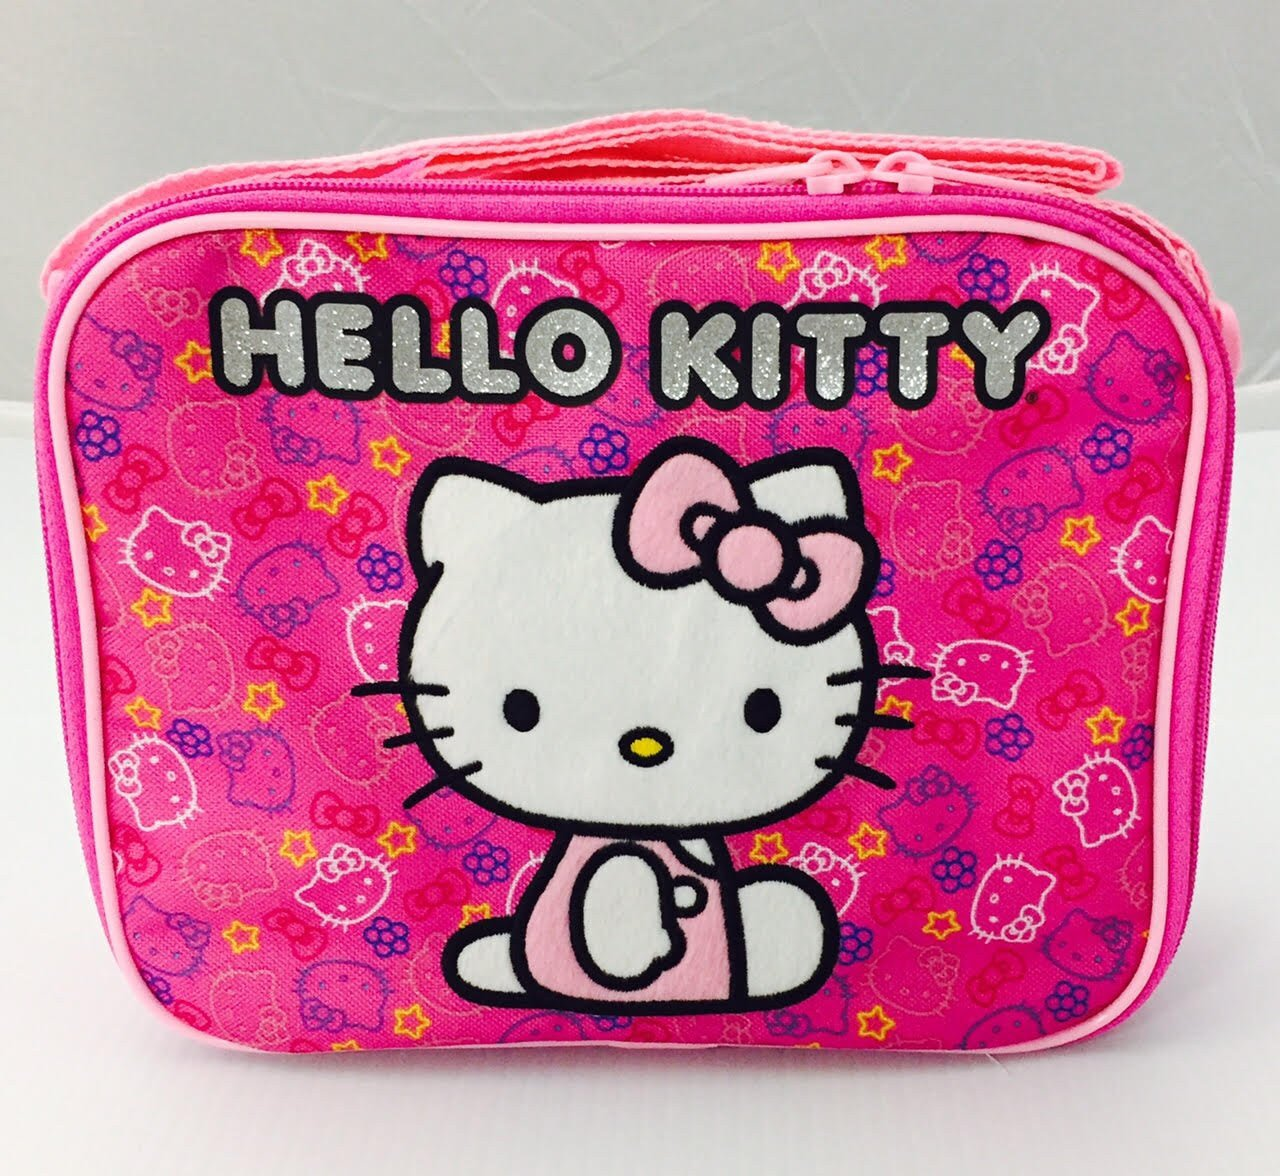 Hello Kitty Bedroom In A Box New Amazon Sanrio Christmas Bo Hello Kitty Lunch Bag